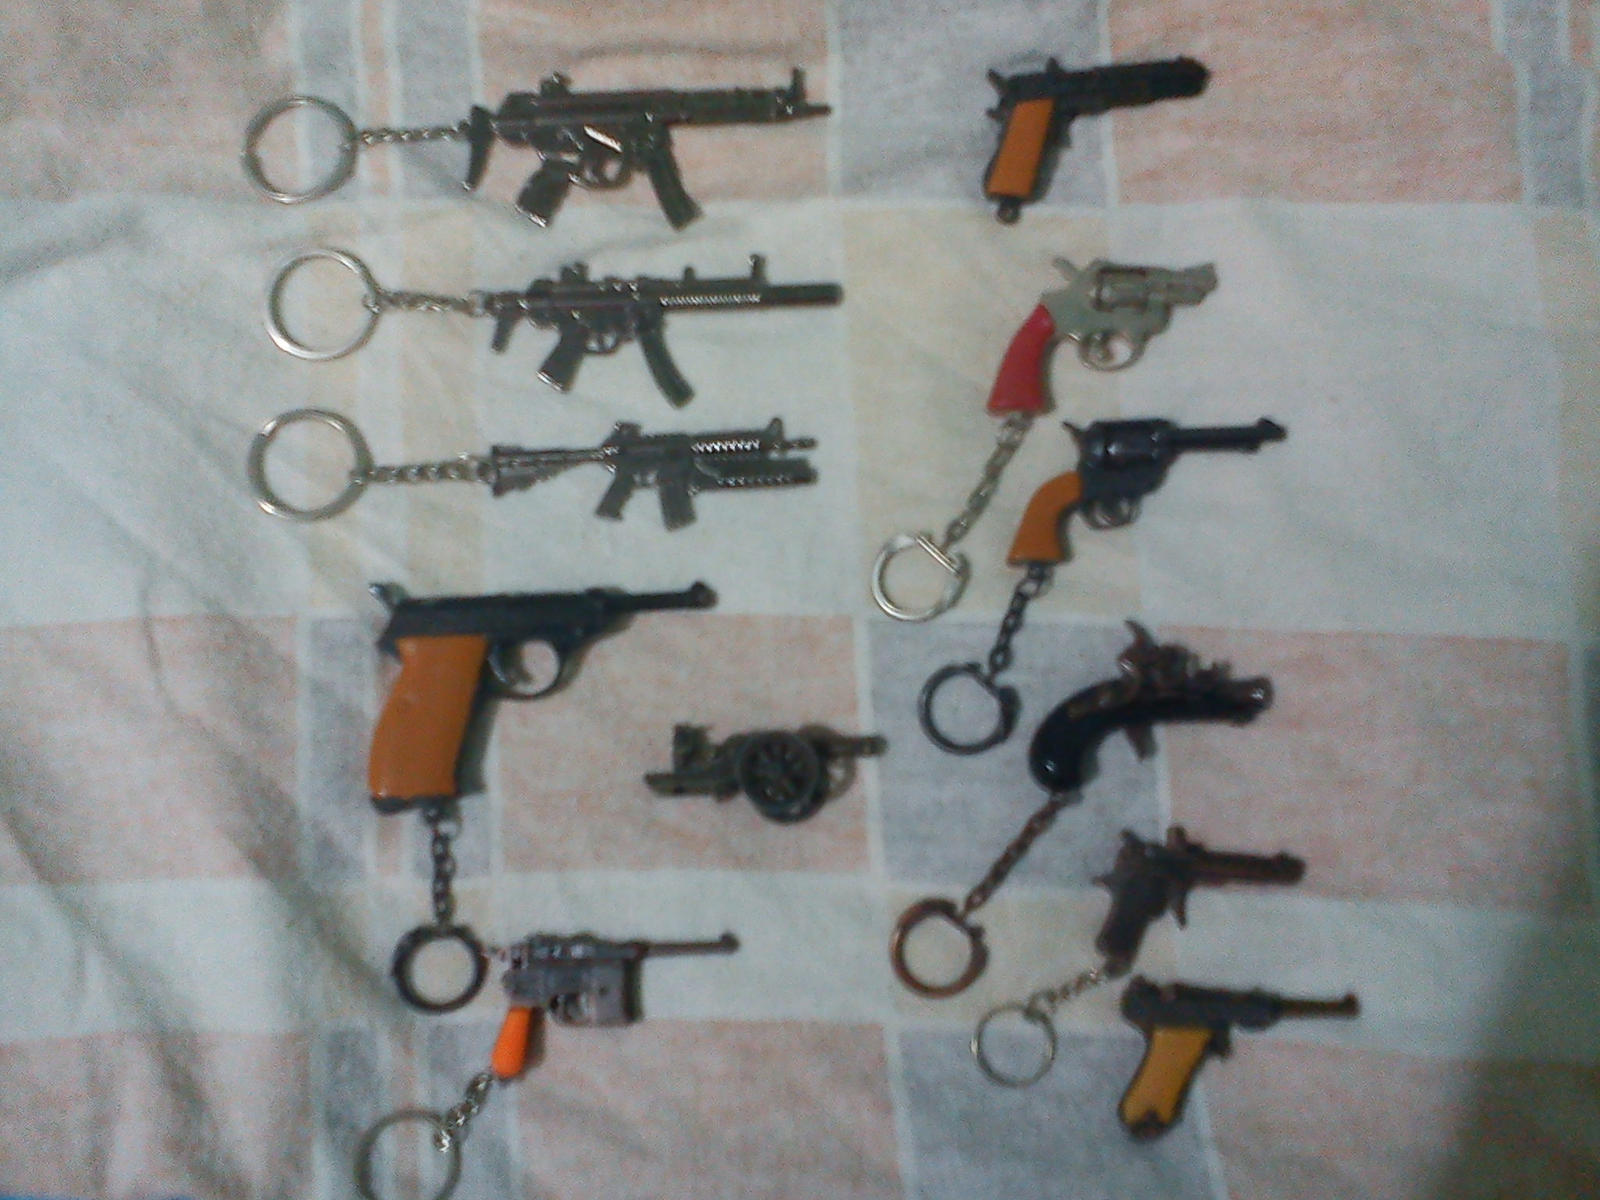 My keychains guns collection by 96blackarrow